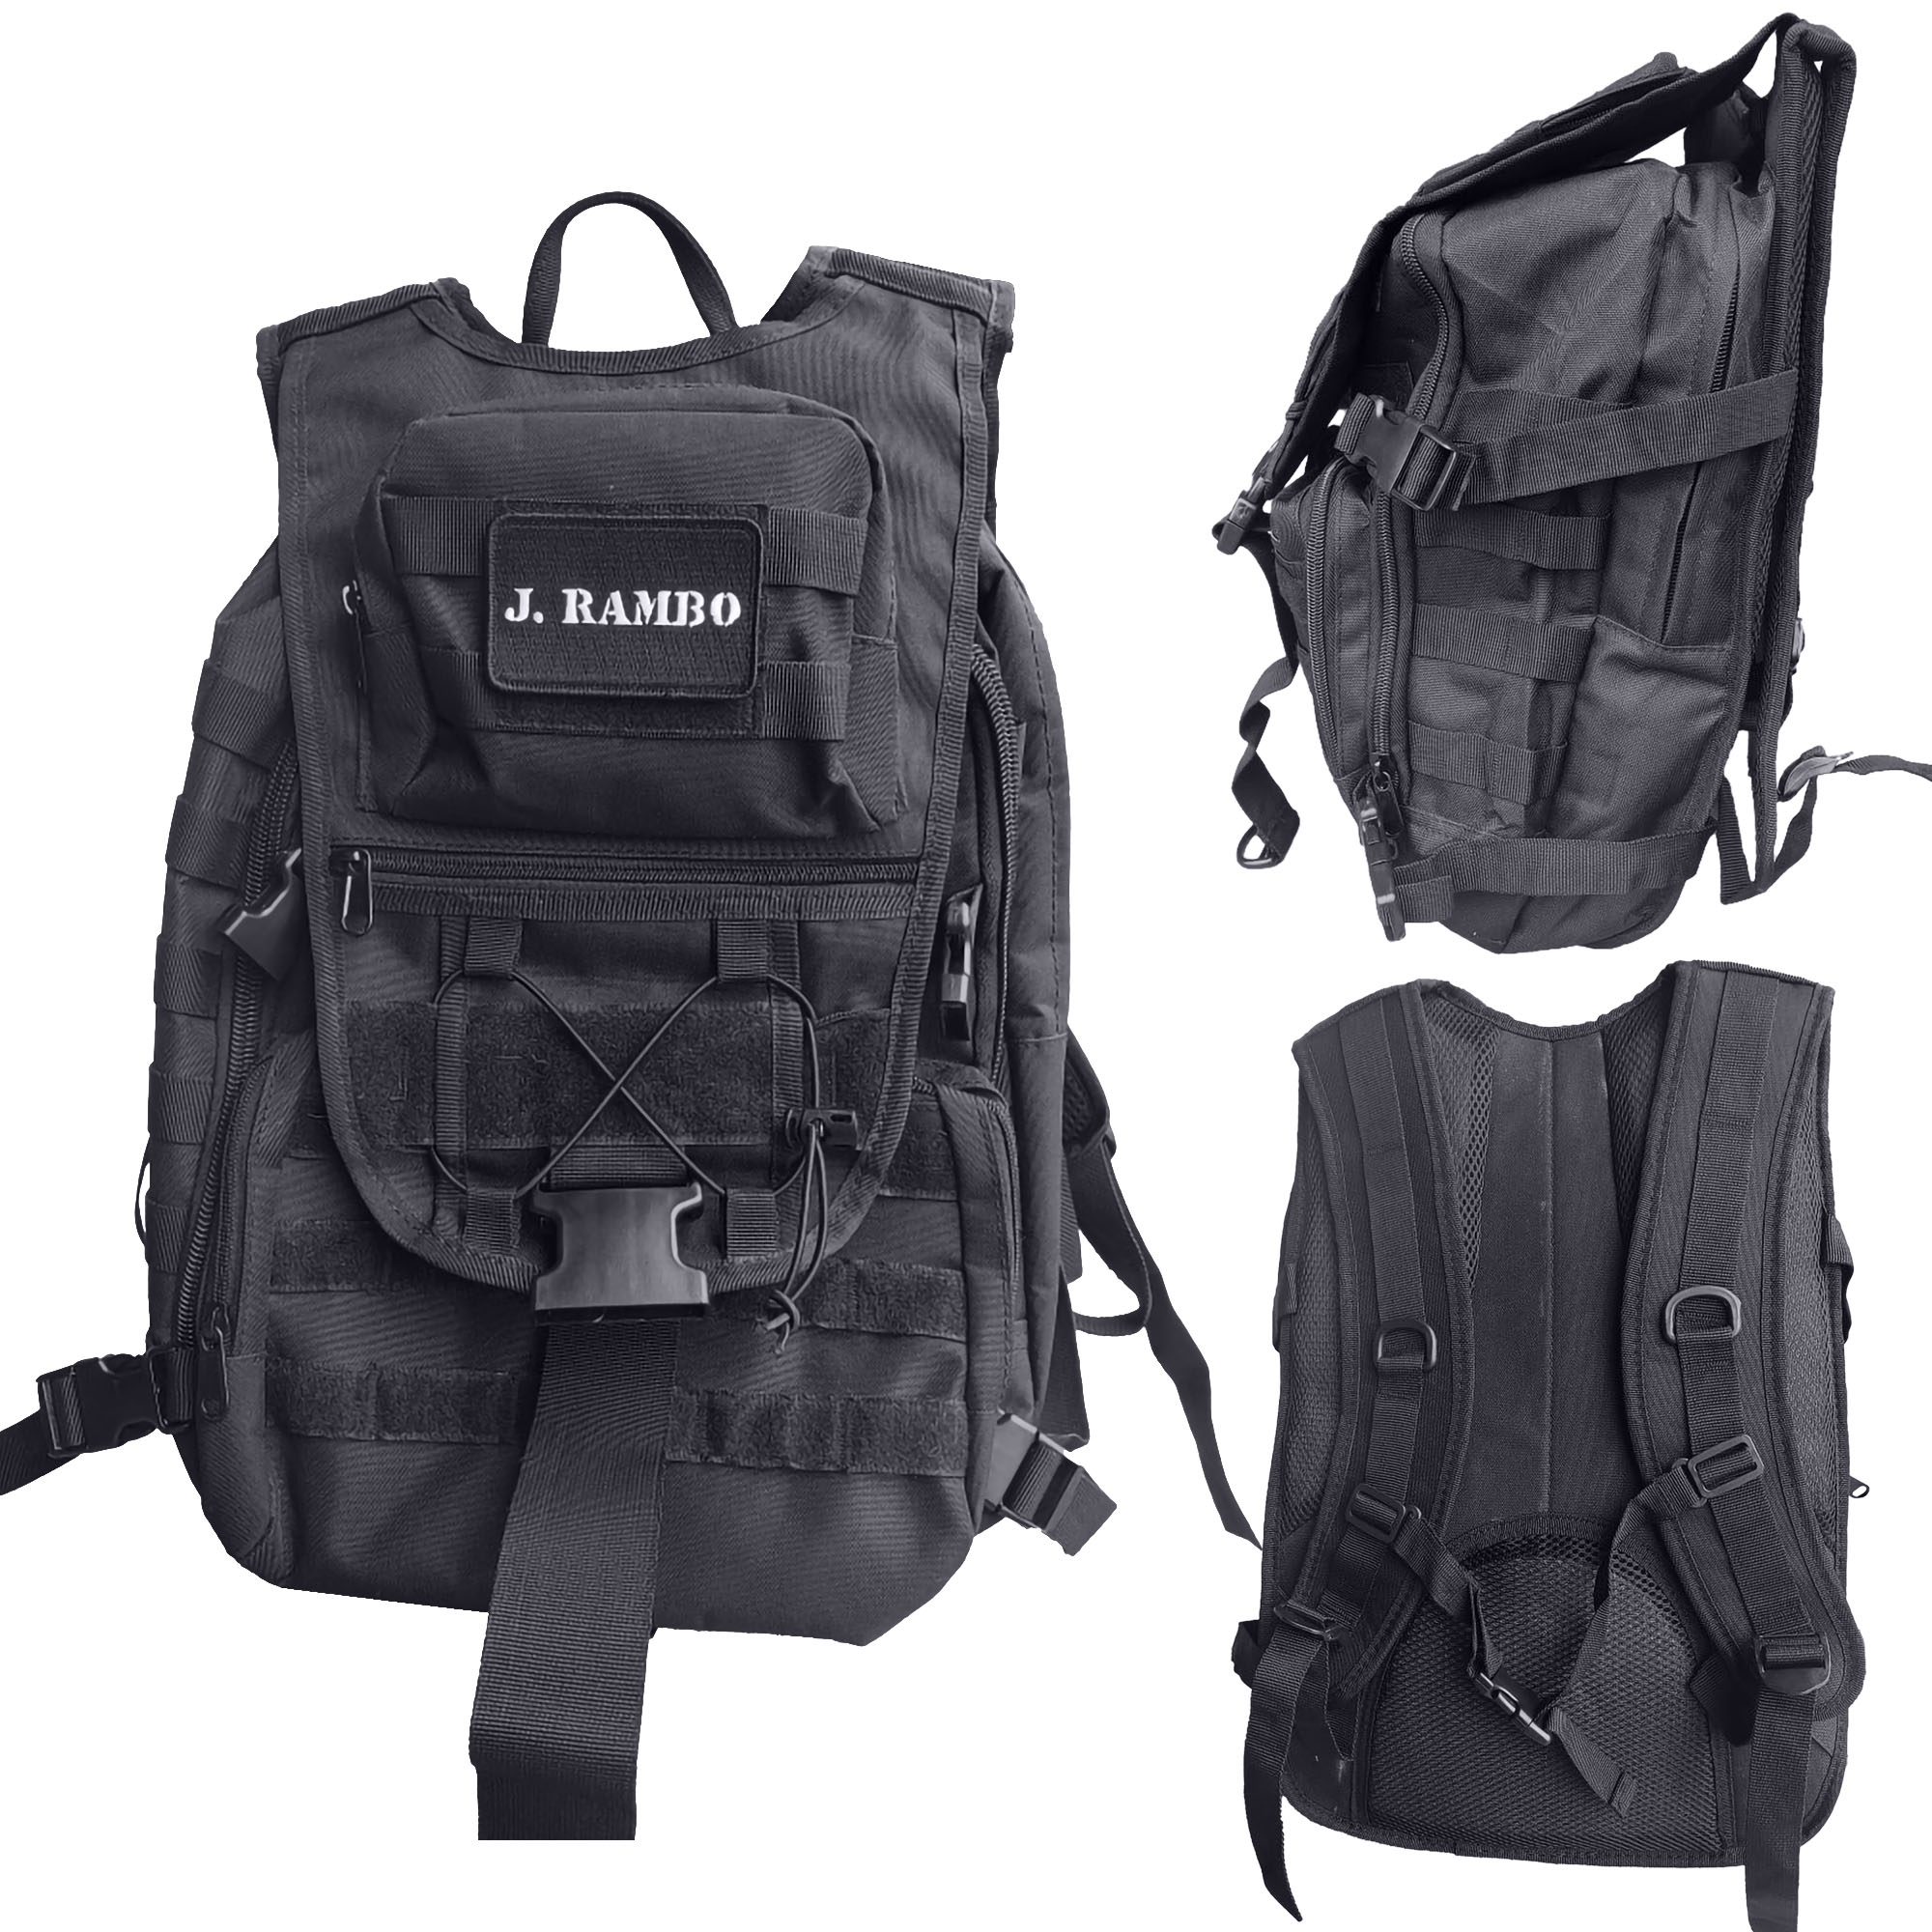 J. Rambo Tactical backpack